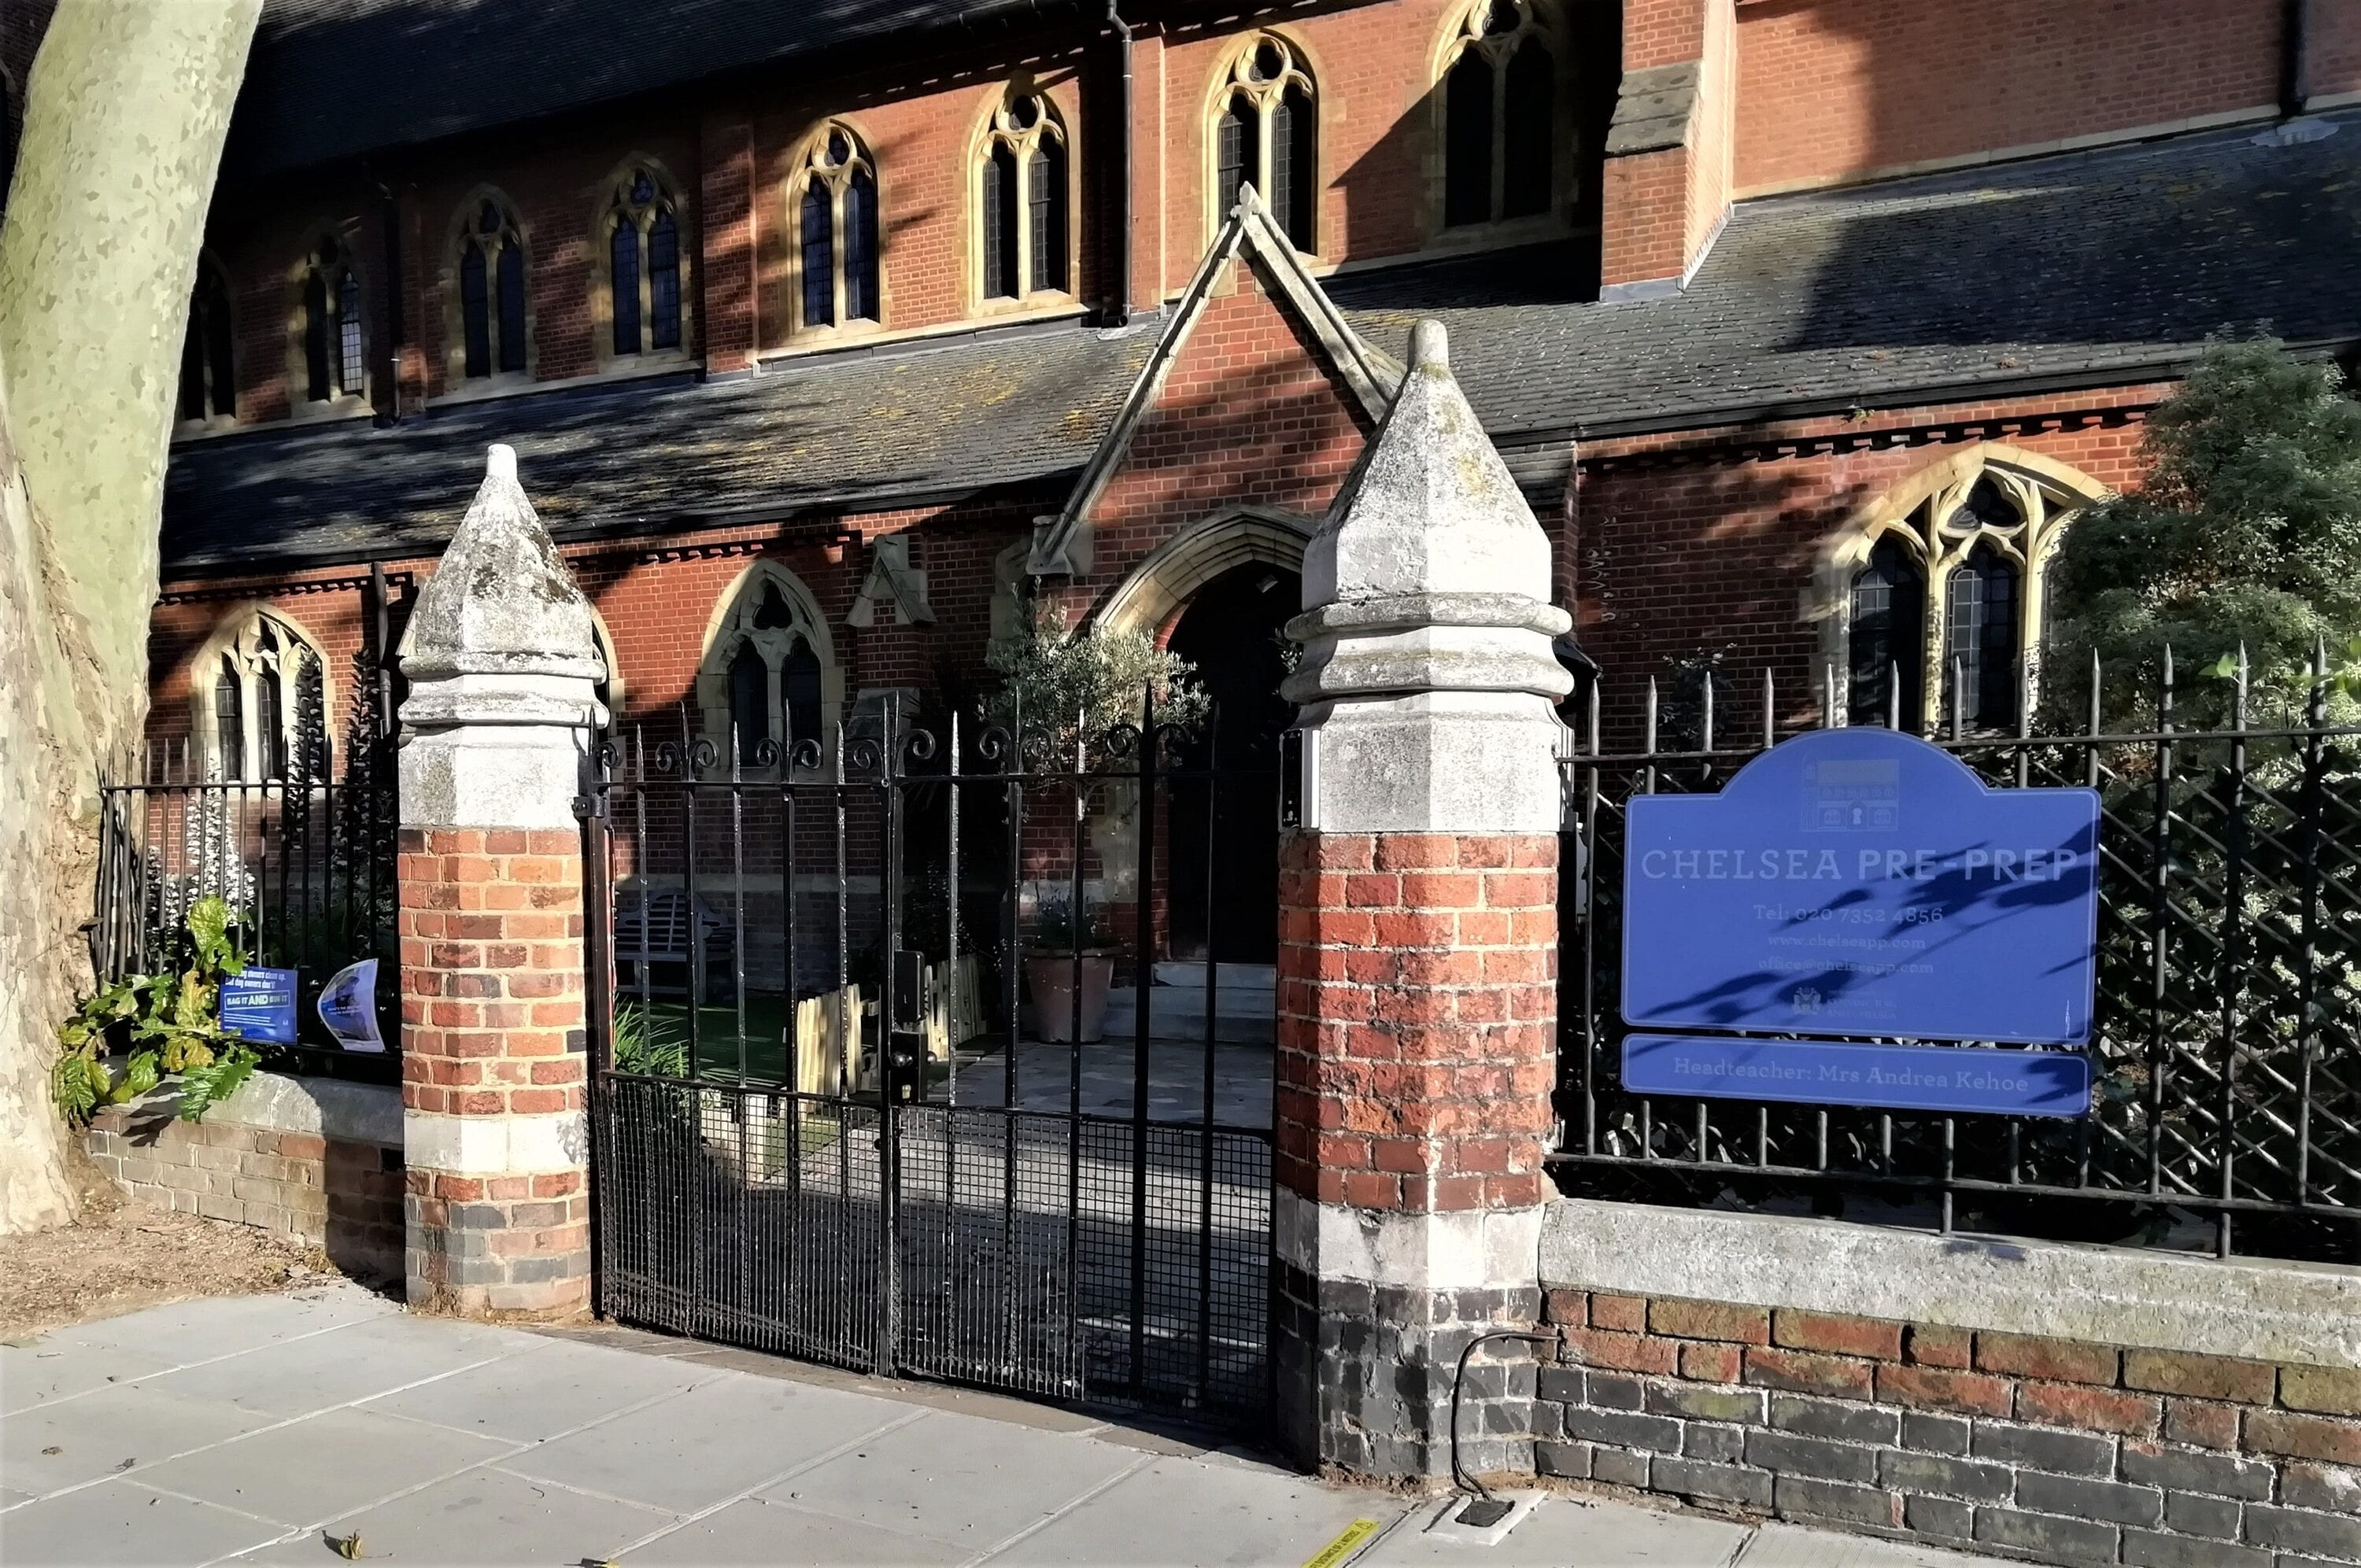 Repair of Entrance Gate, Chelsea Pre-Prep, London SW10 5